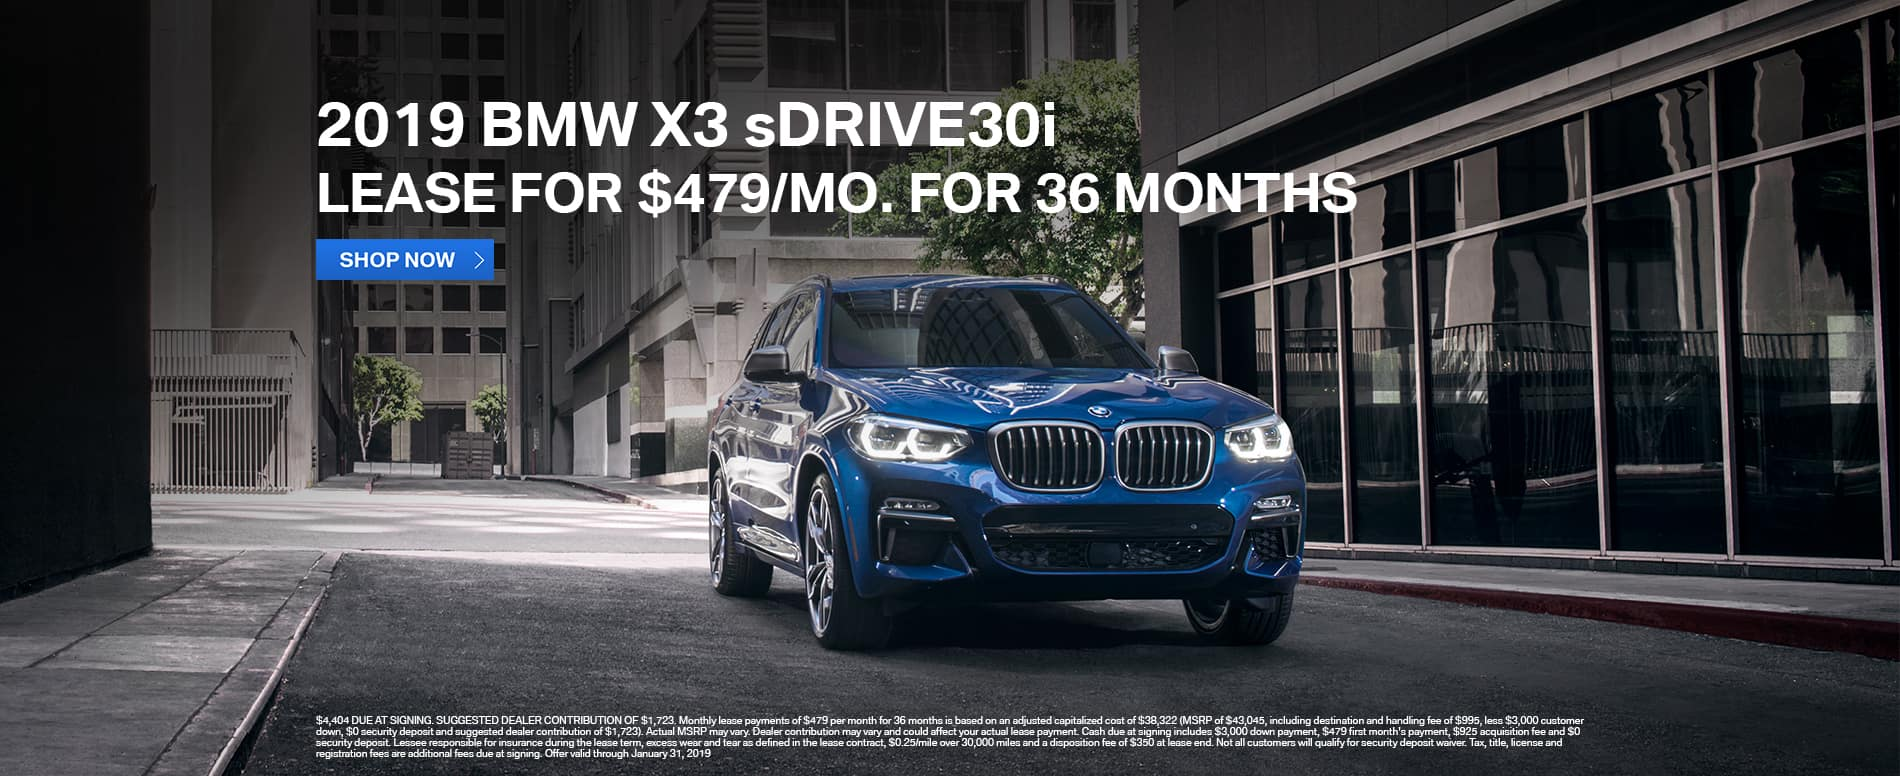 lease-2019-x3-sdrive30i-479-per-month-beaumont